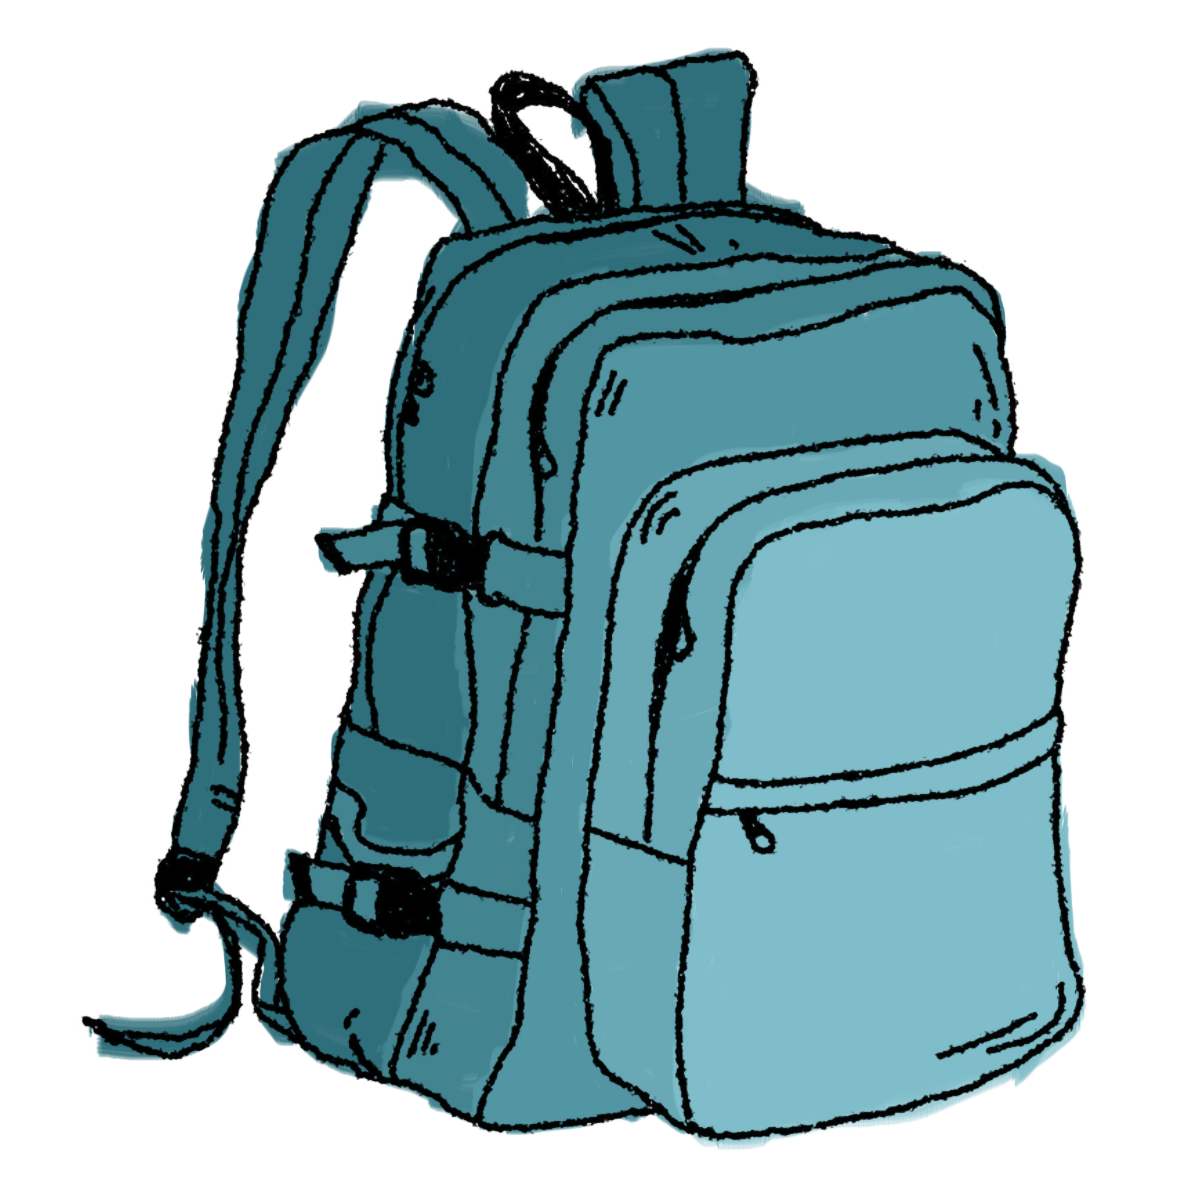 Panda free images hikingbackpackclipart. Clipart backpack packup